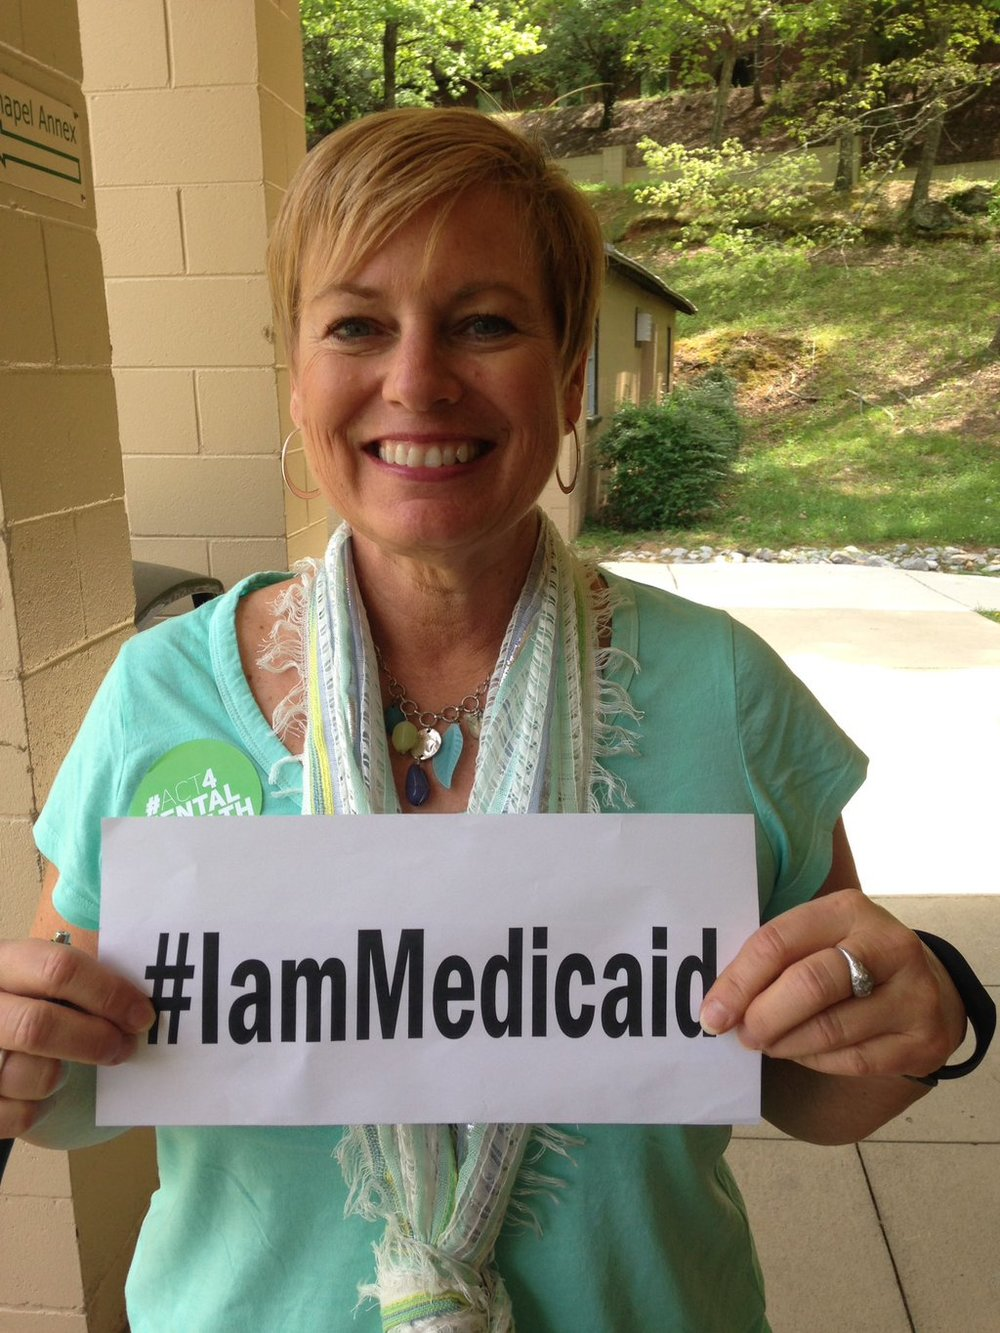 People depend on Medicaid for their very survival. Let your representatives know you support Medicaid! #IamMedicaid